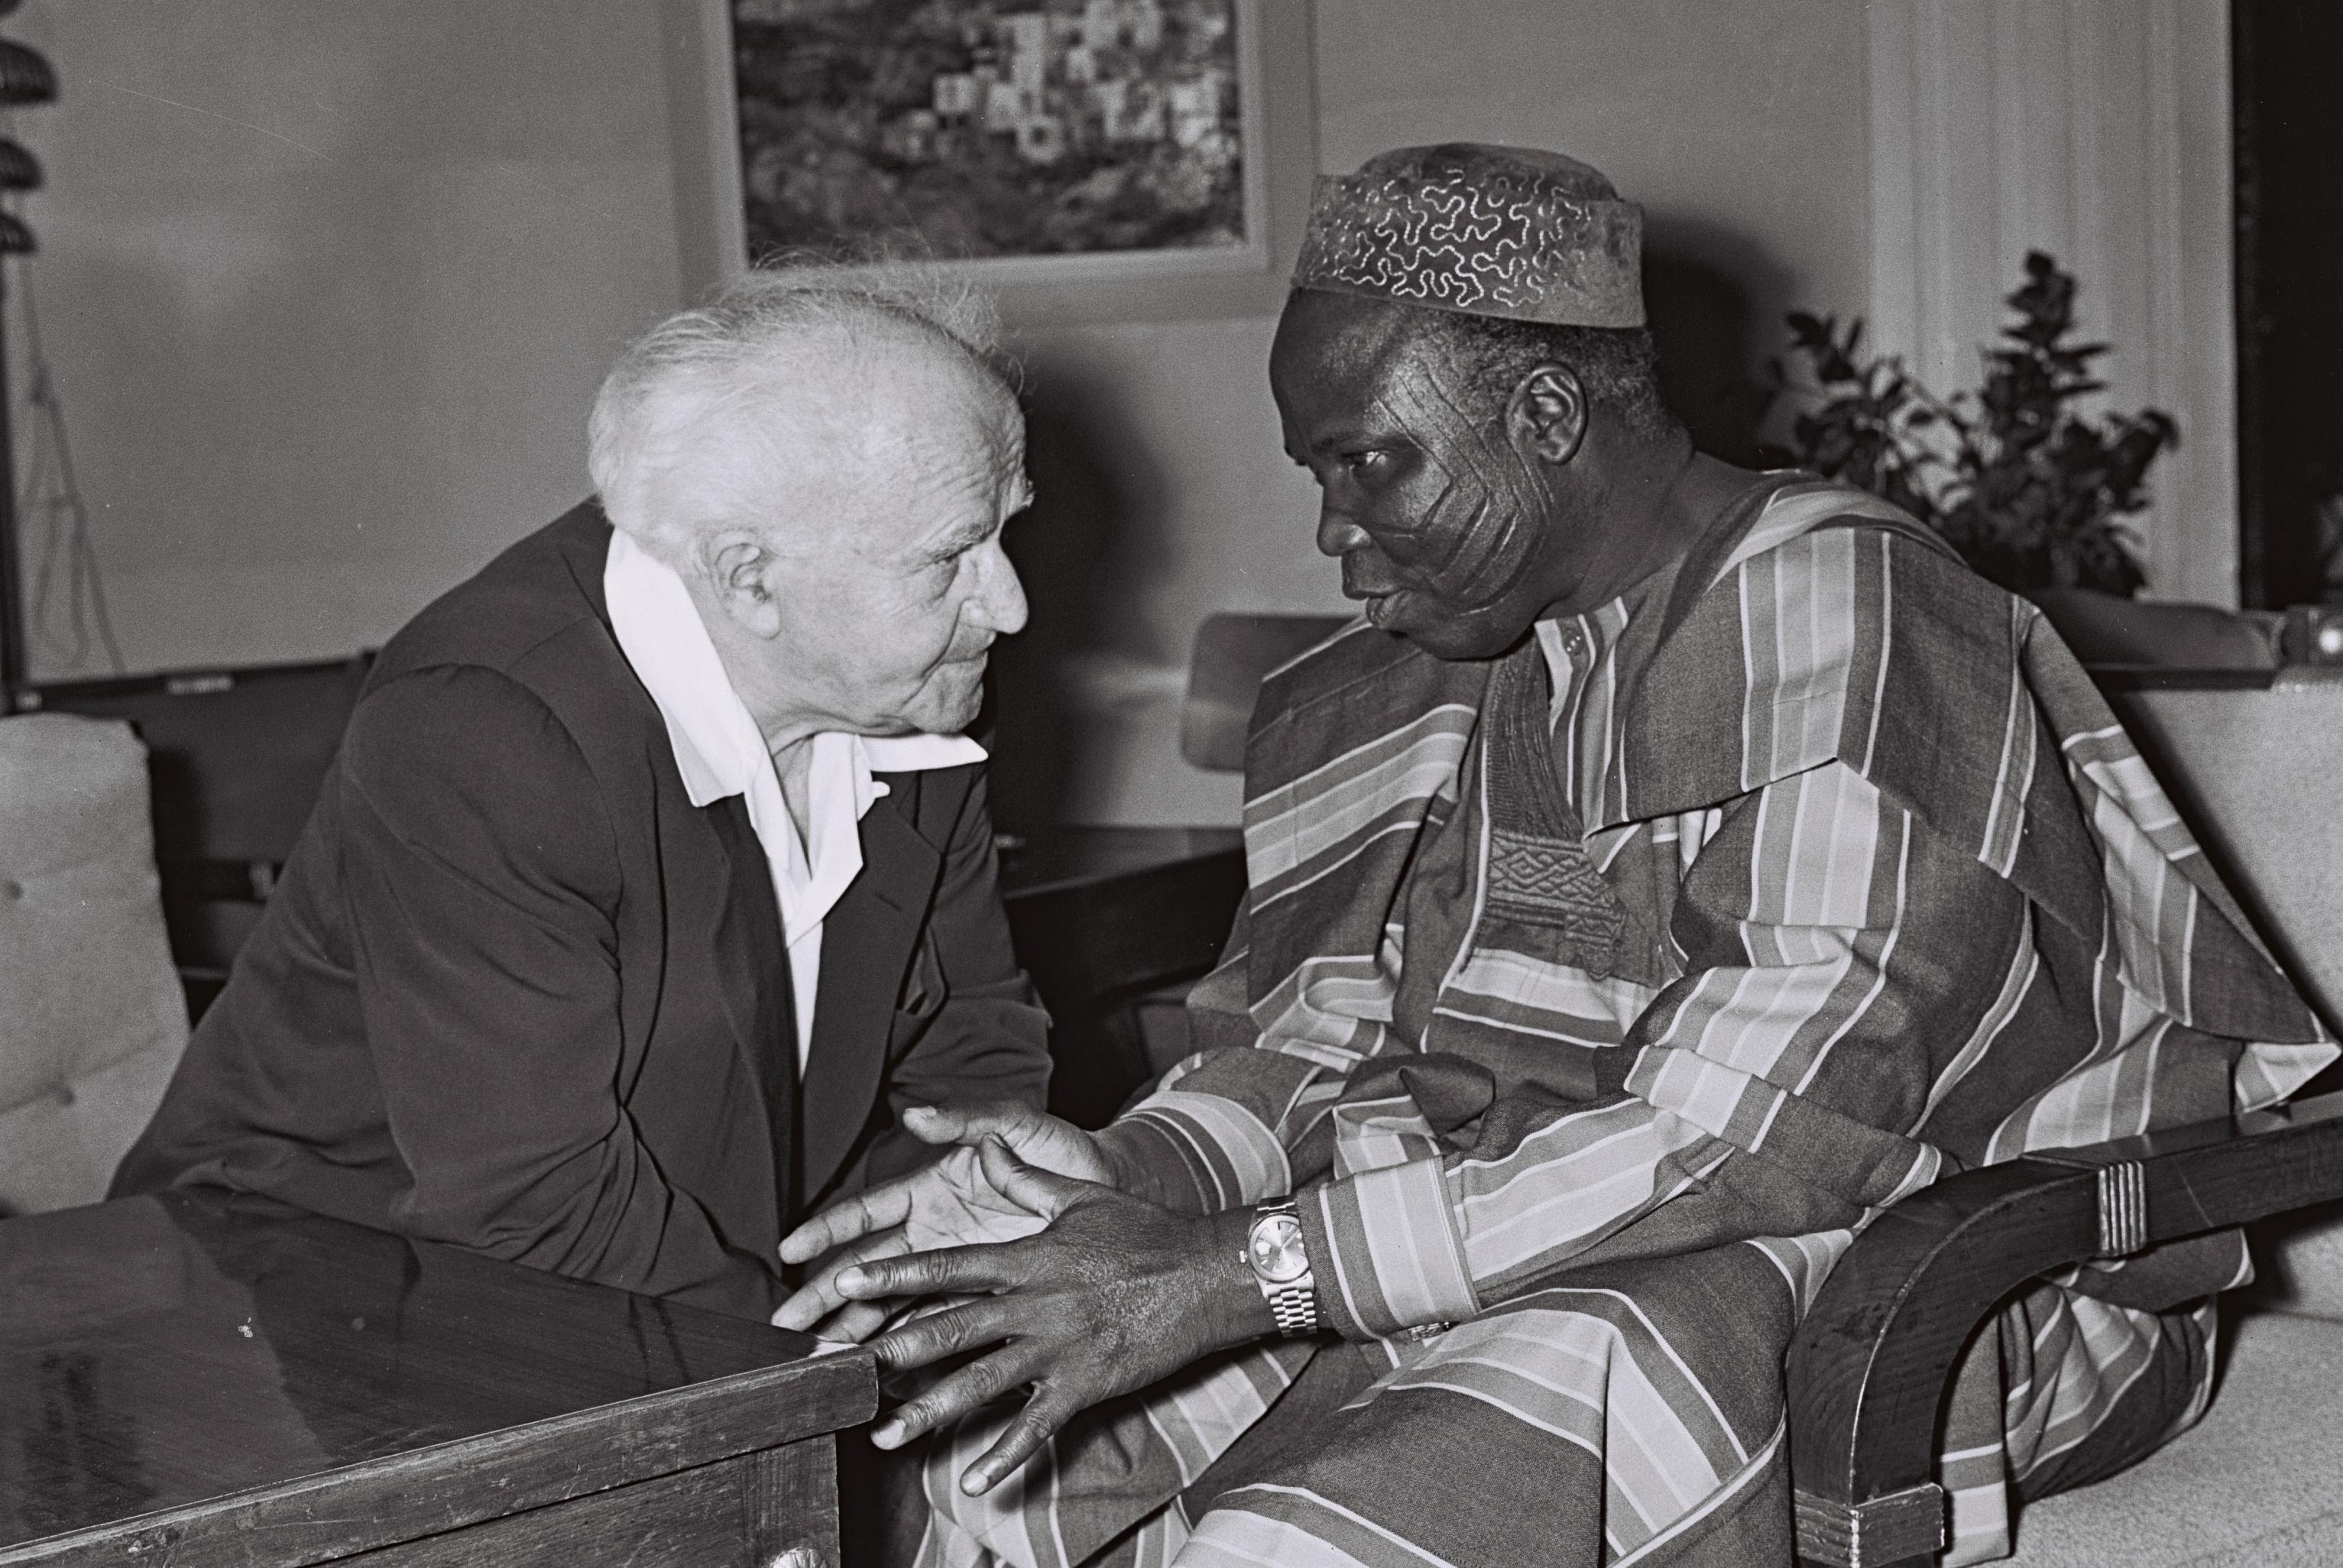 Chief S L Akintola Prime minister of western Nigeria in conversation with prime minister of Israel David Ben Gurion at Ben Gurion`s Office,Jerusalem. Circa 1961